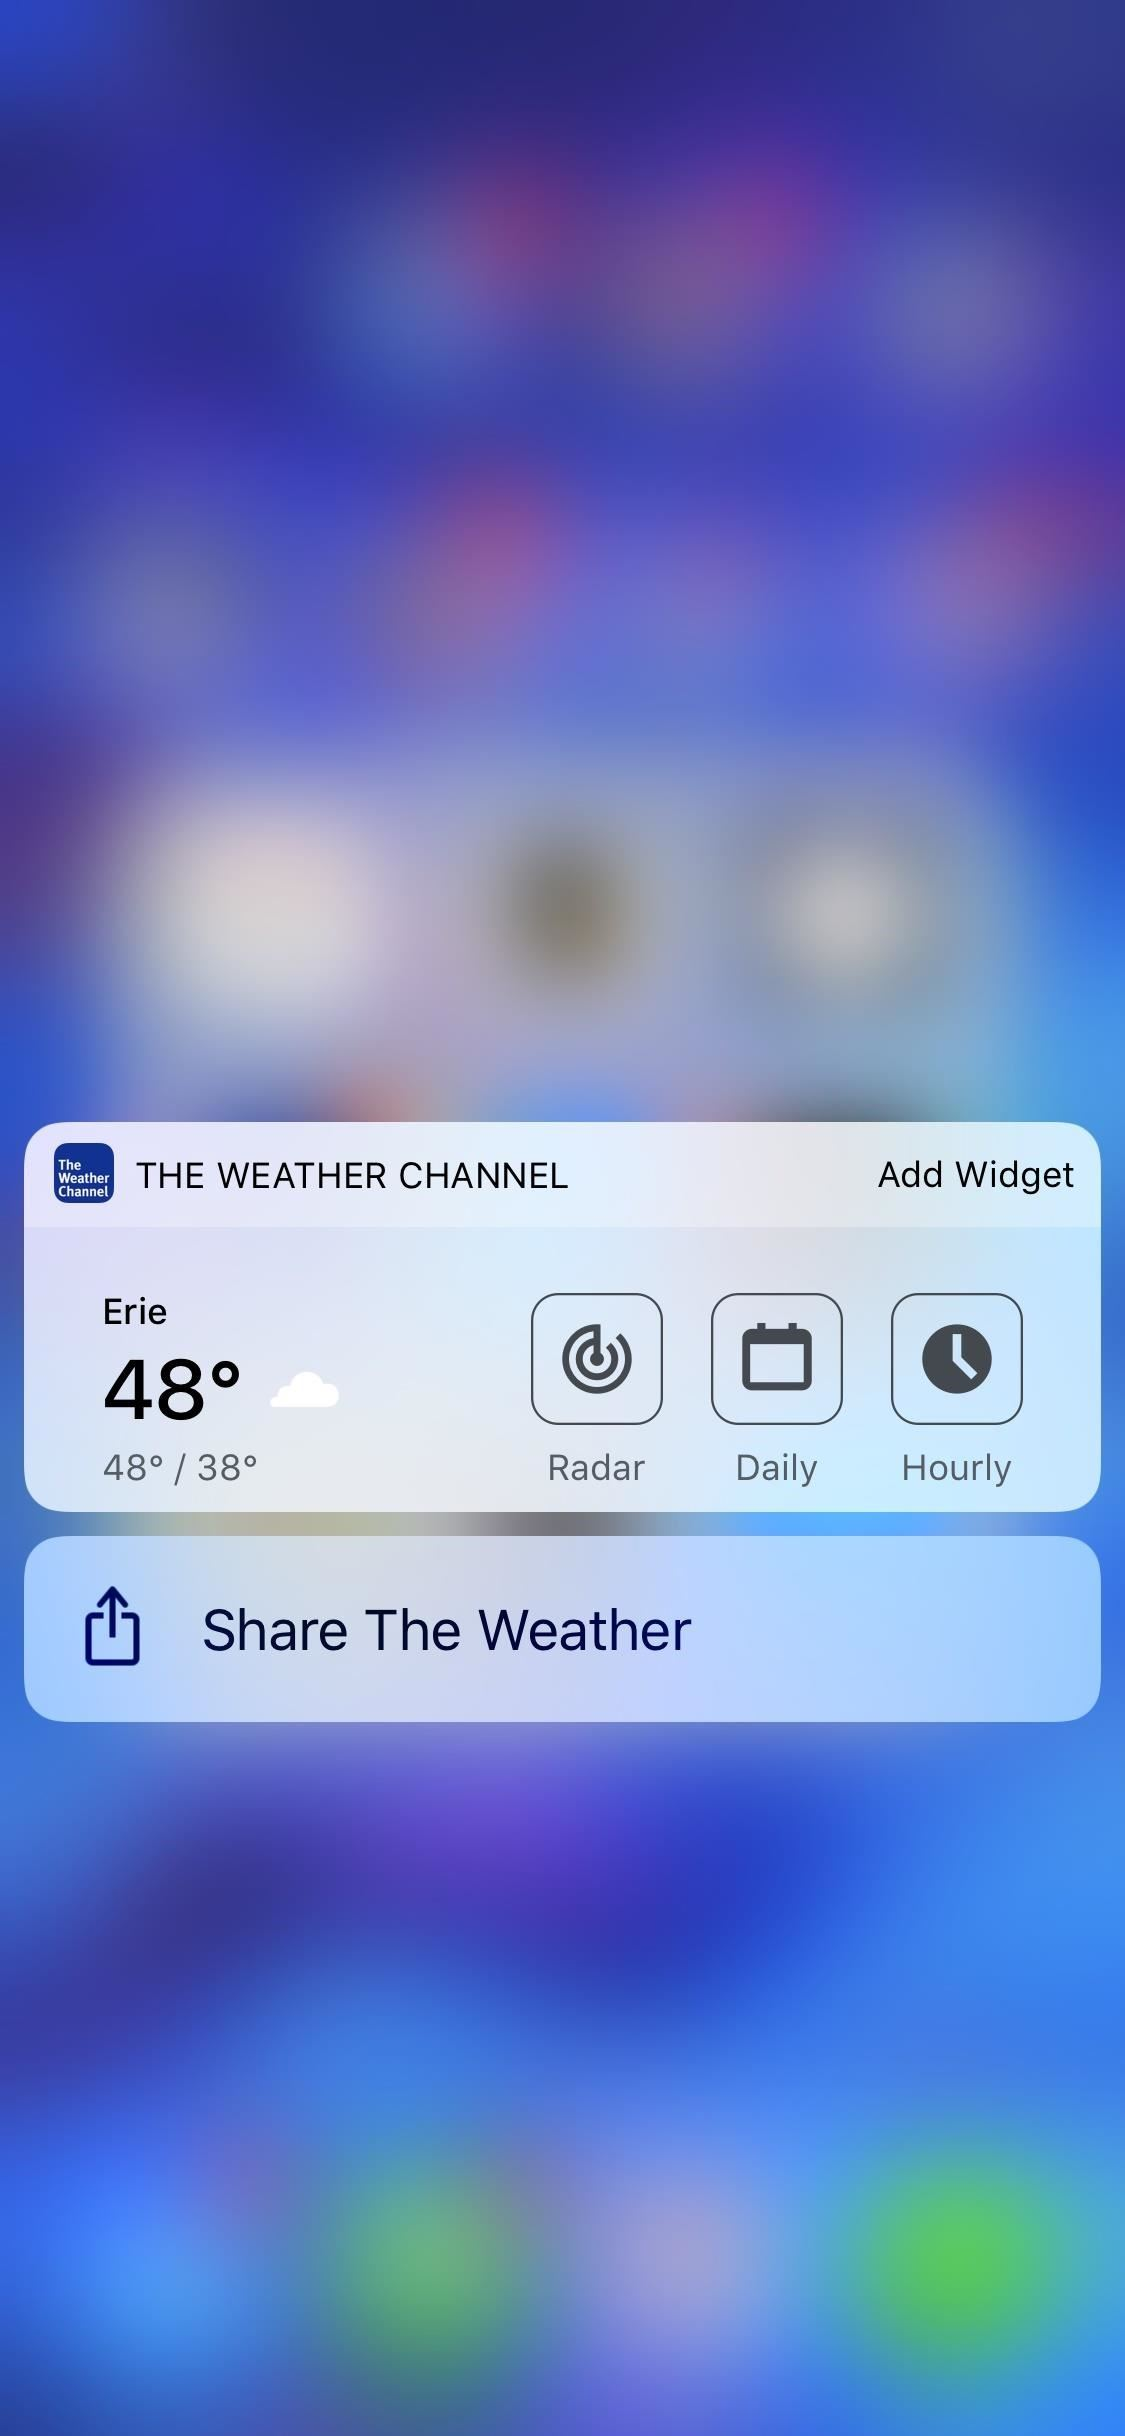 The Easiest Way to Add Widgets to the Today View on Your iPhone